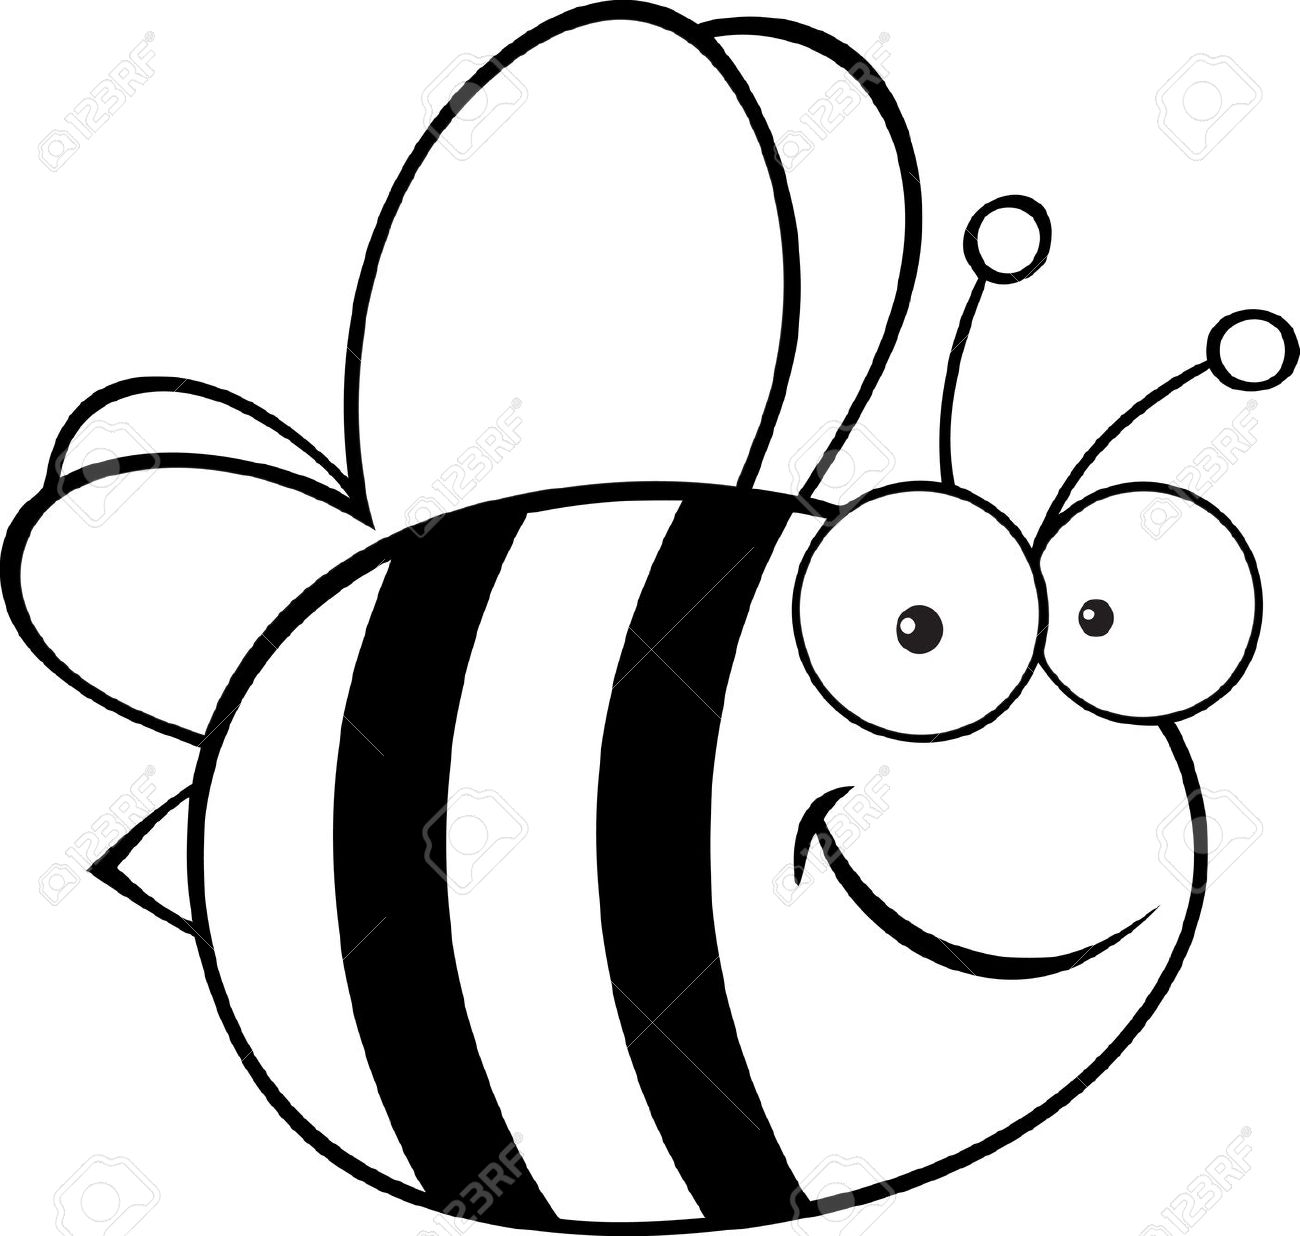 31+ Bee Clipart Black And White.